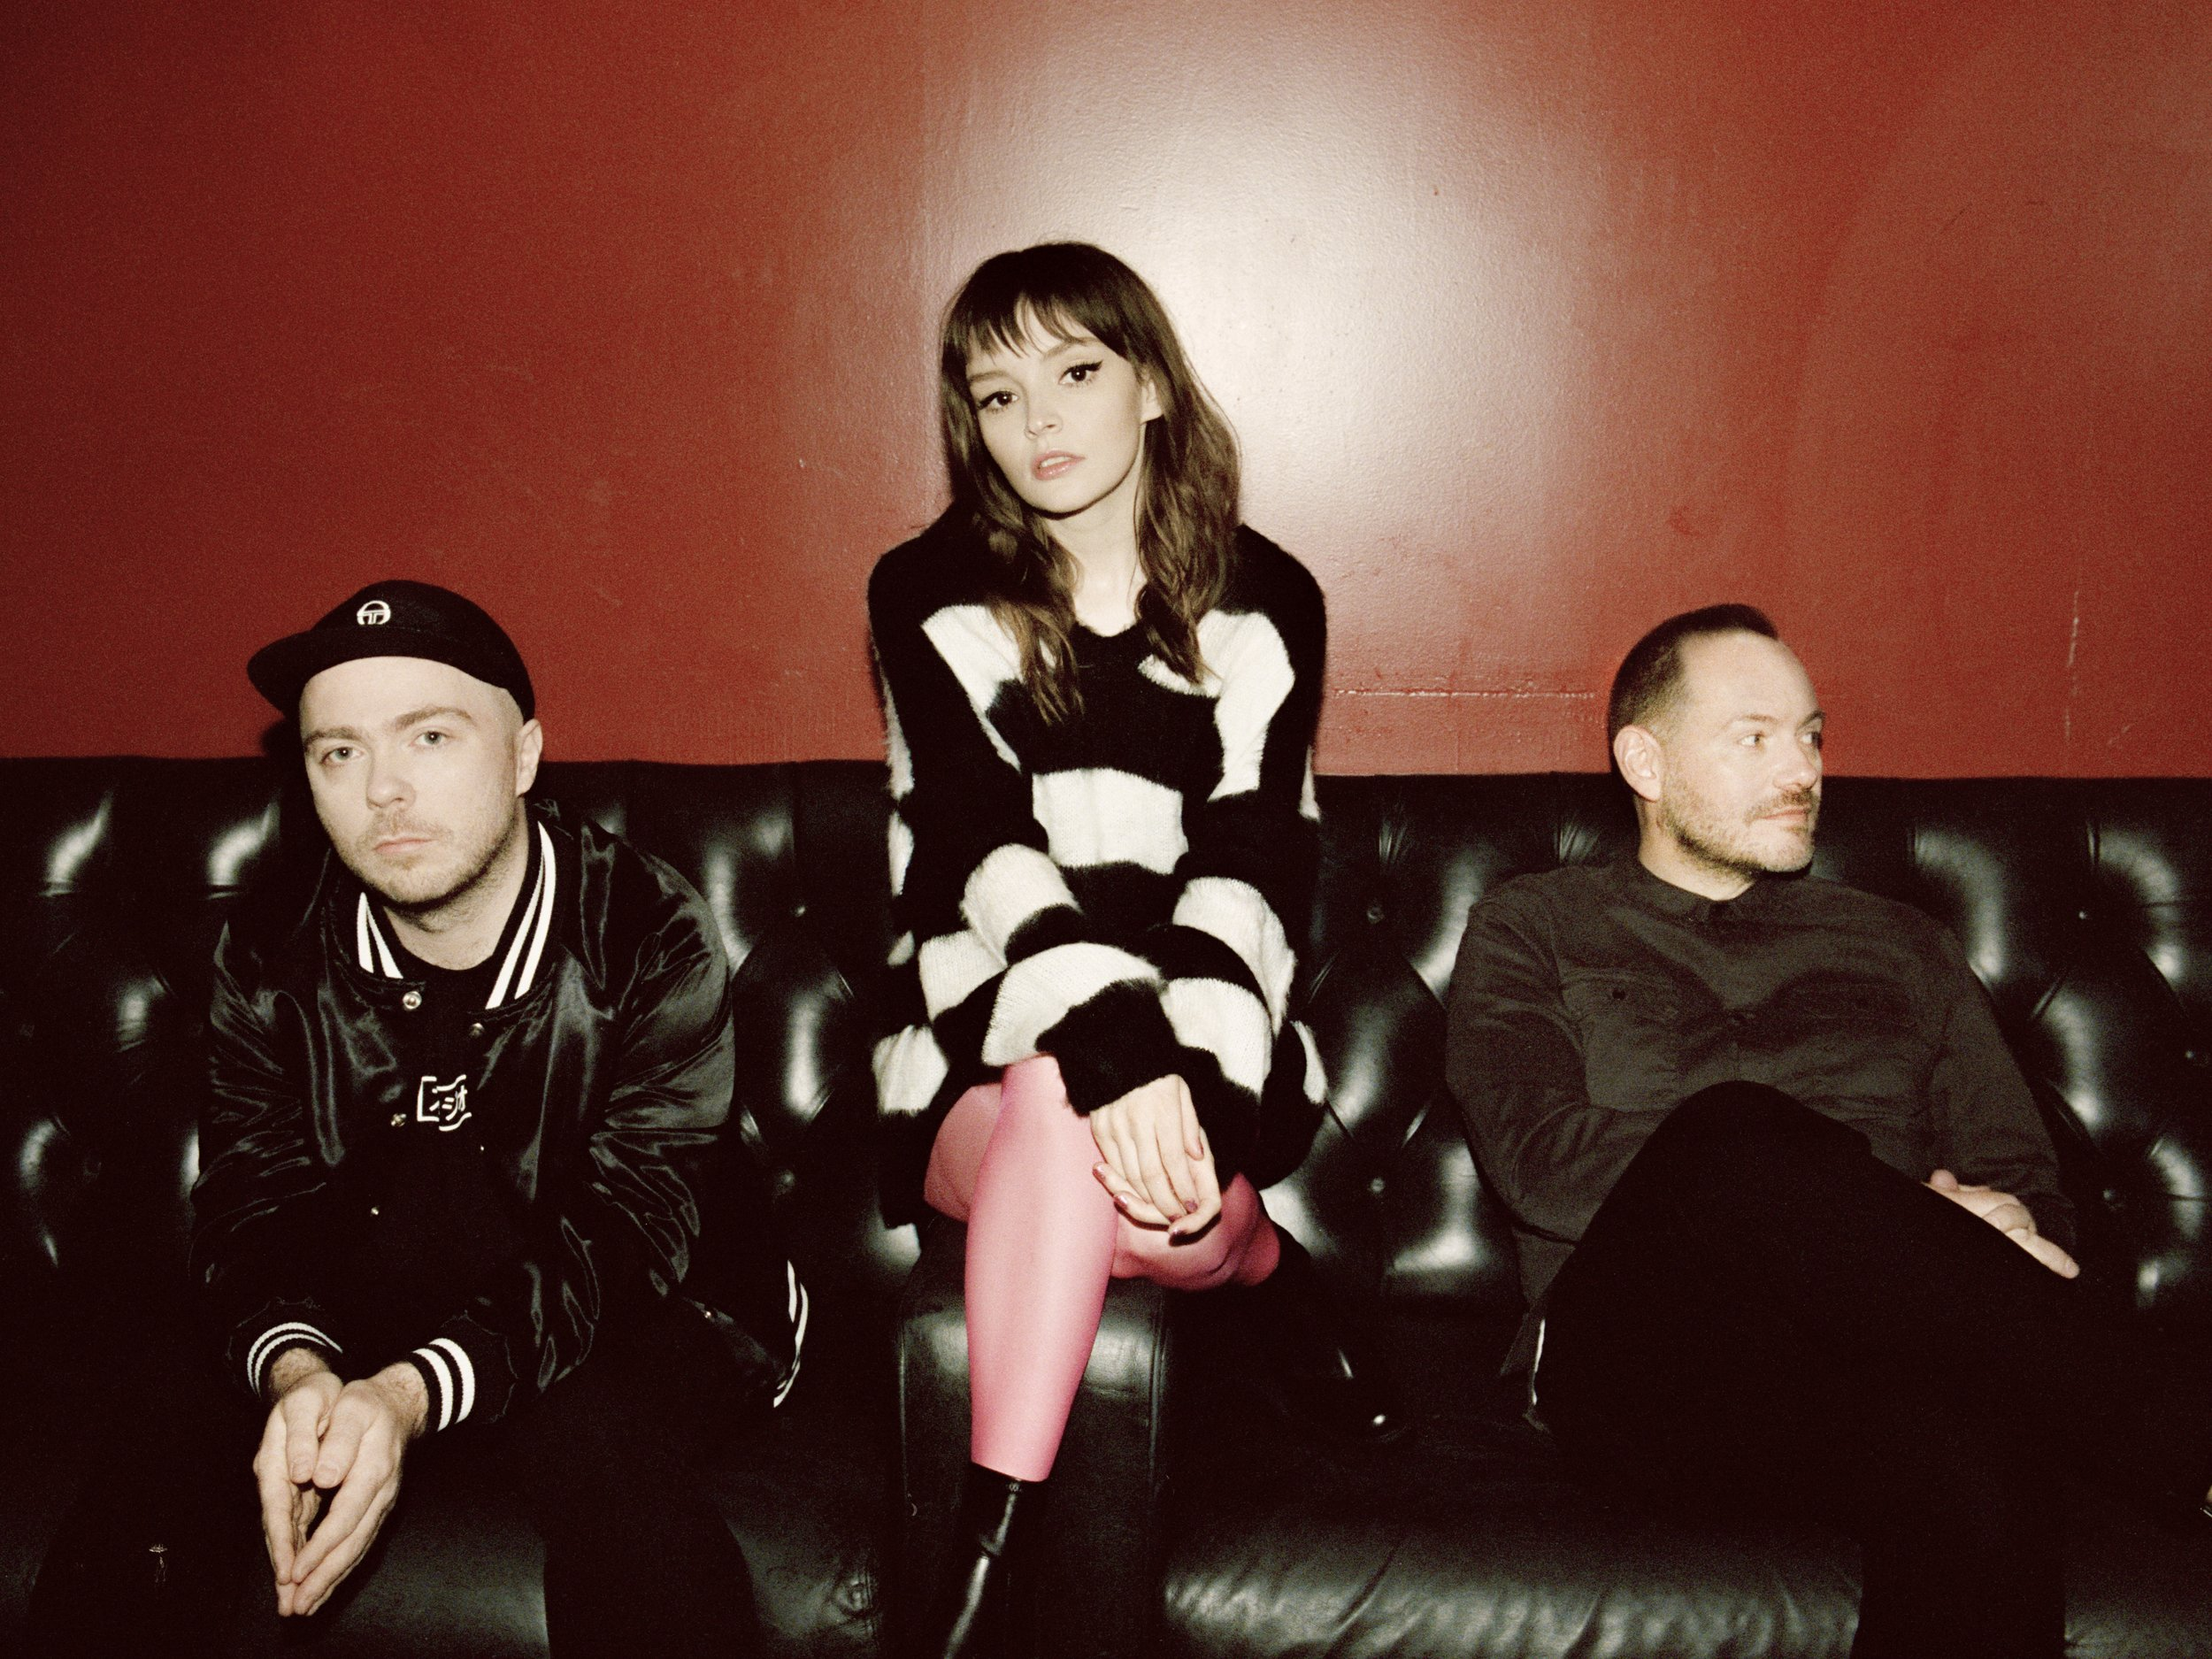 CHVRCHES 2019 01 - please credit Joost Vandebrug.jpg